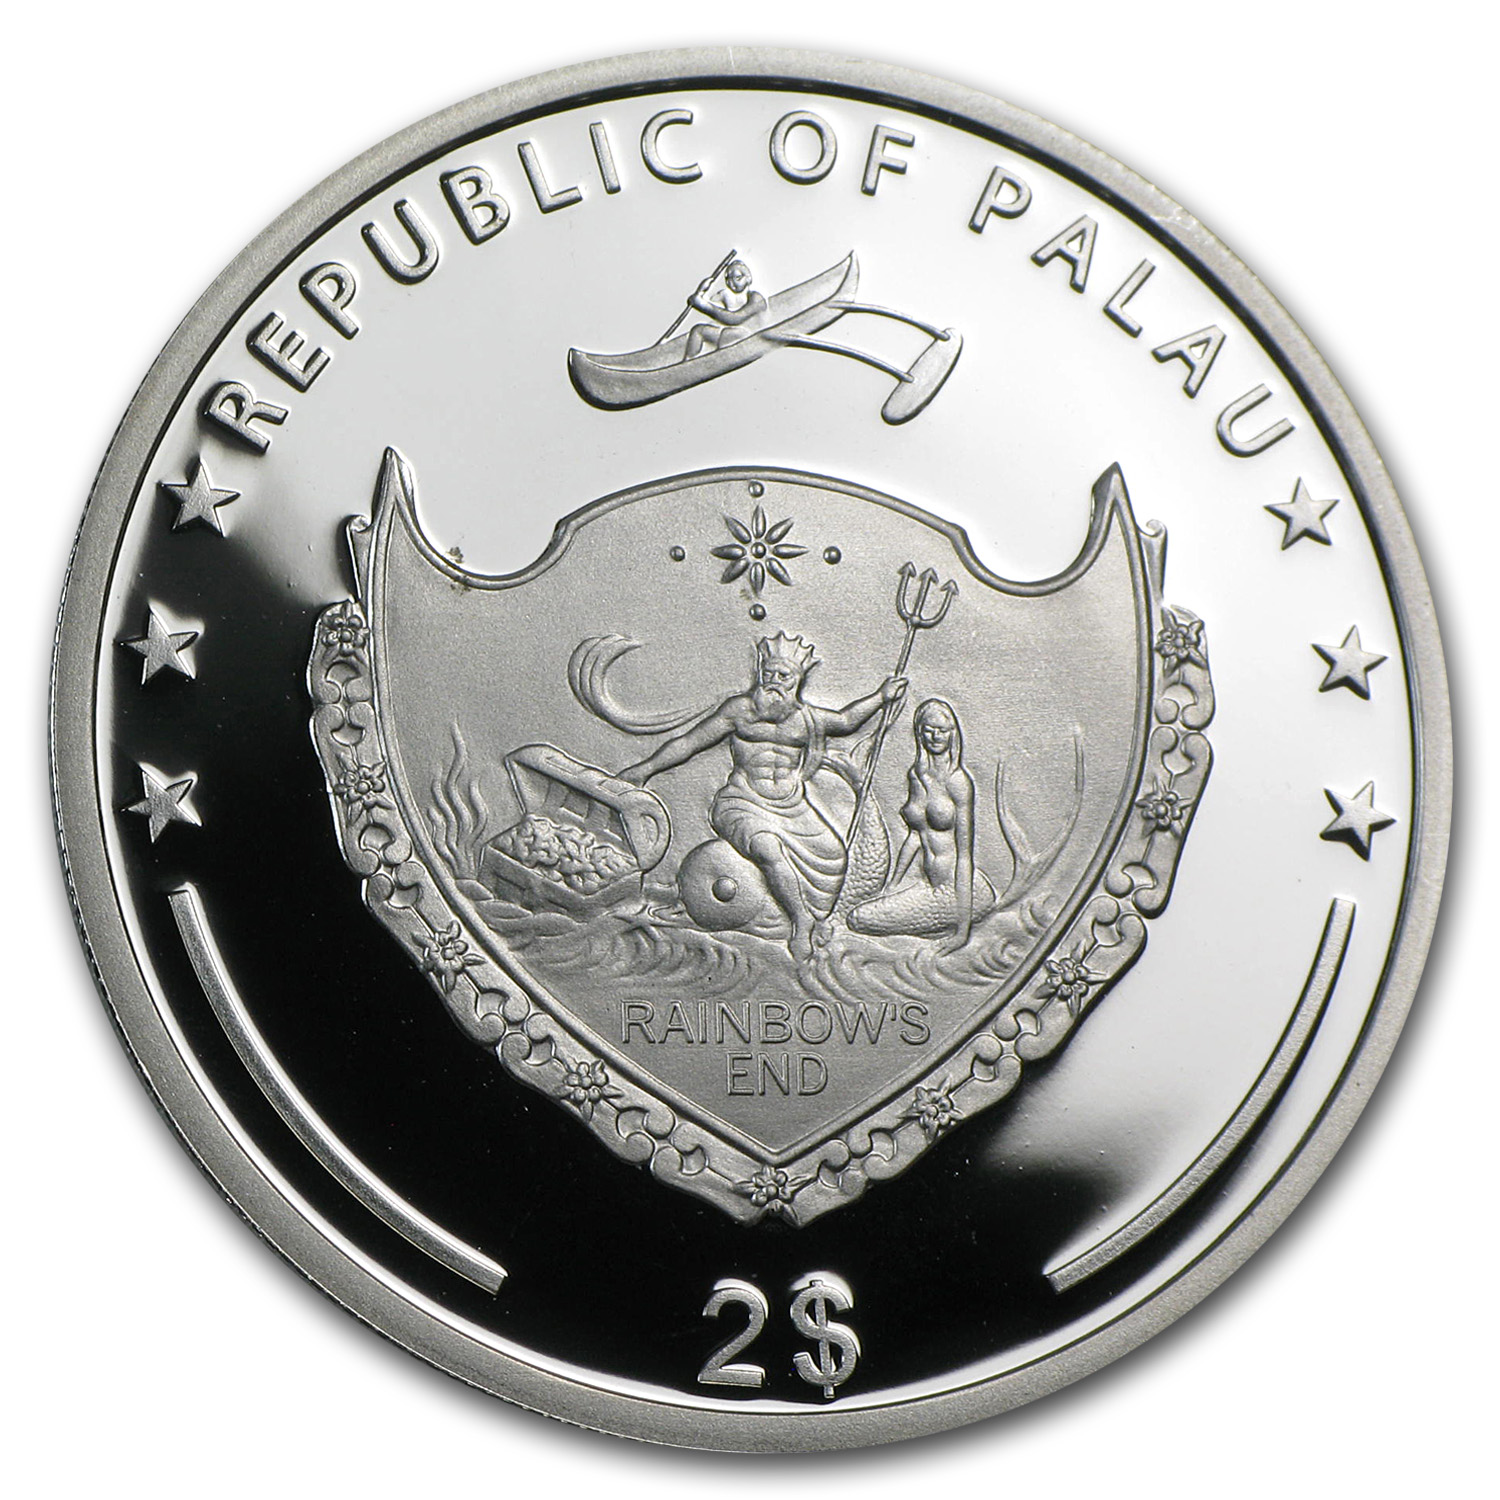 2013 Palau Proof Silver $2 World of Frogs Australian Green Frog